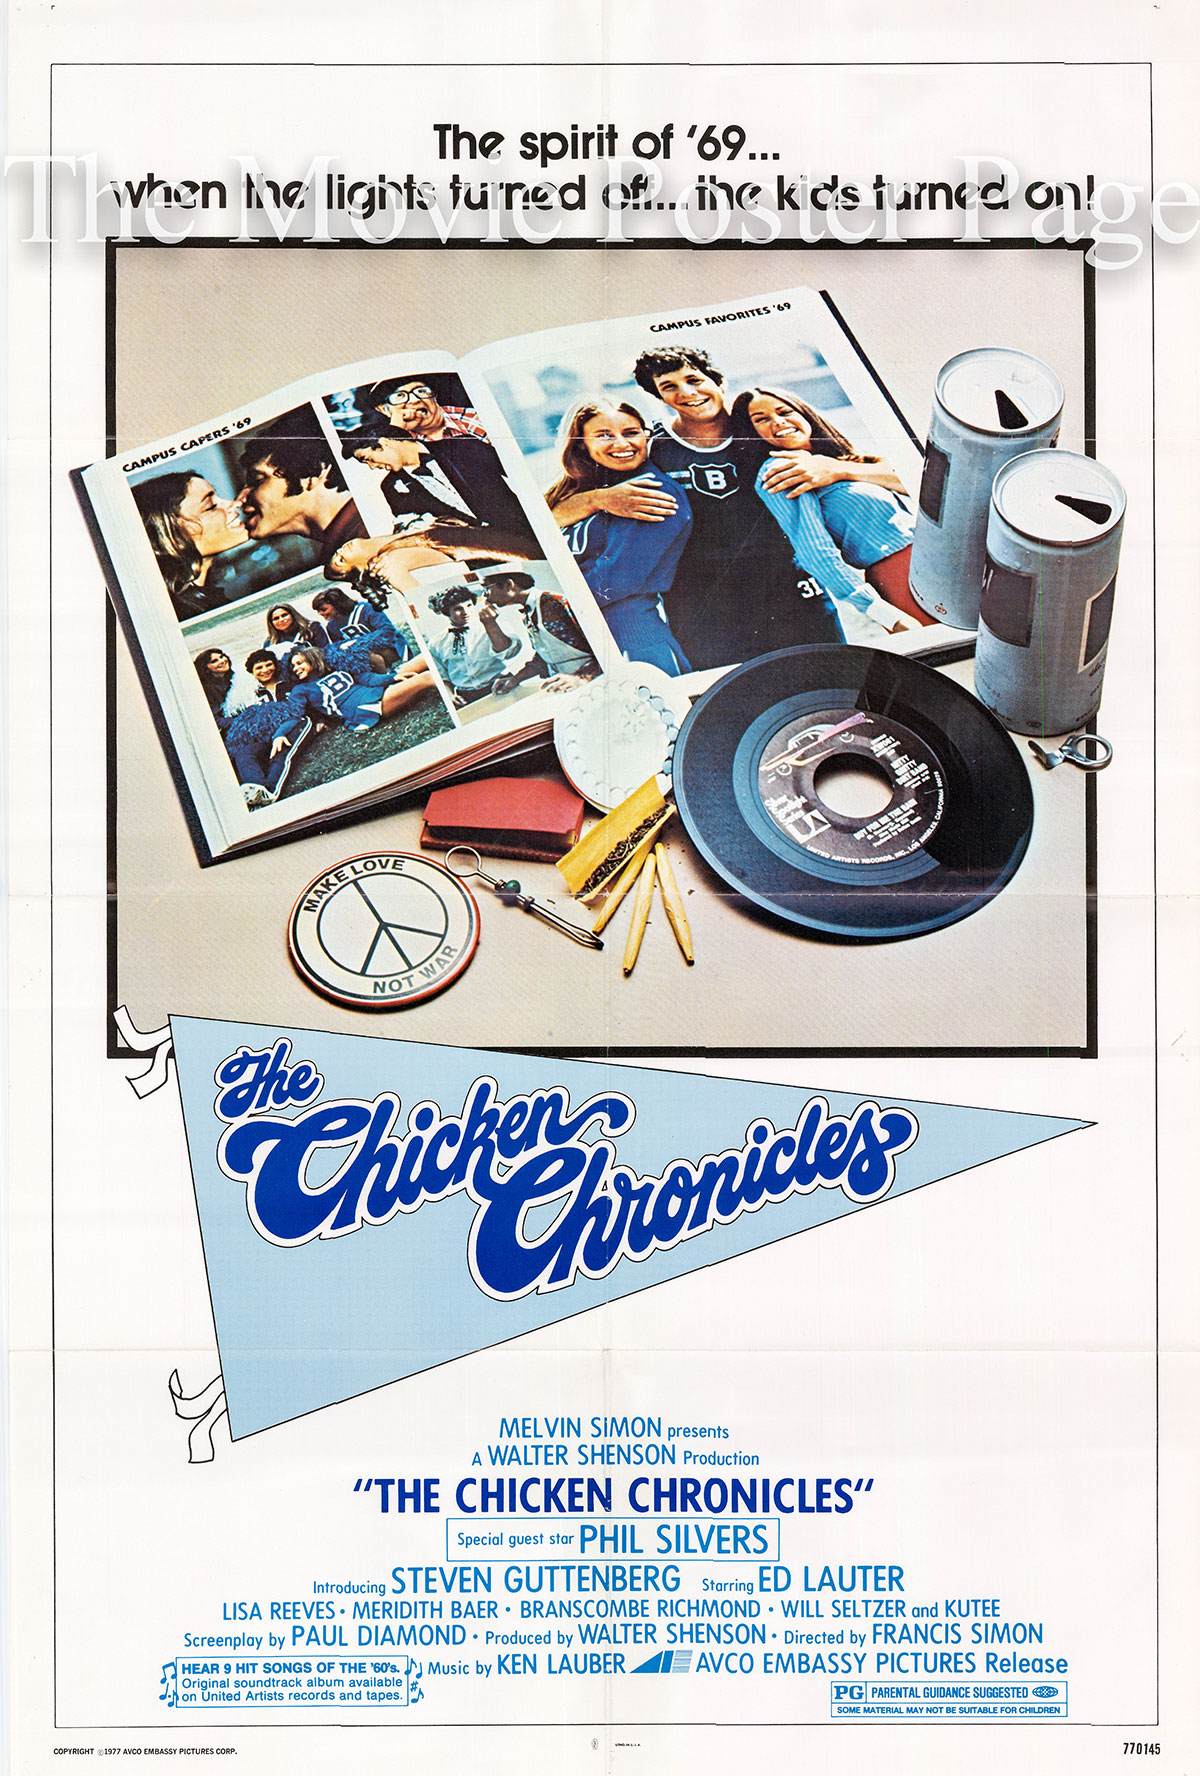 Pictured is a US promotional poster for the 1977 Francis Simon film The Chicken Chronicles starring Steve Guttenbert.